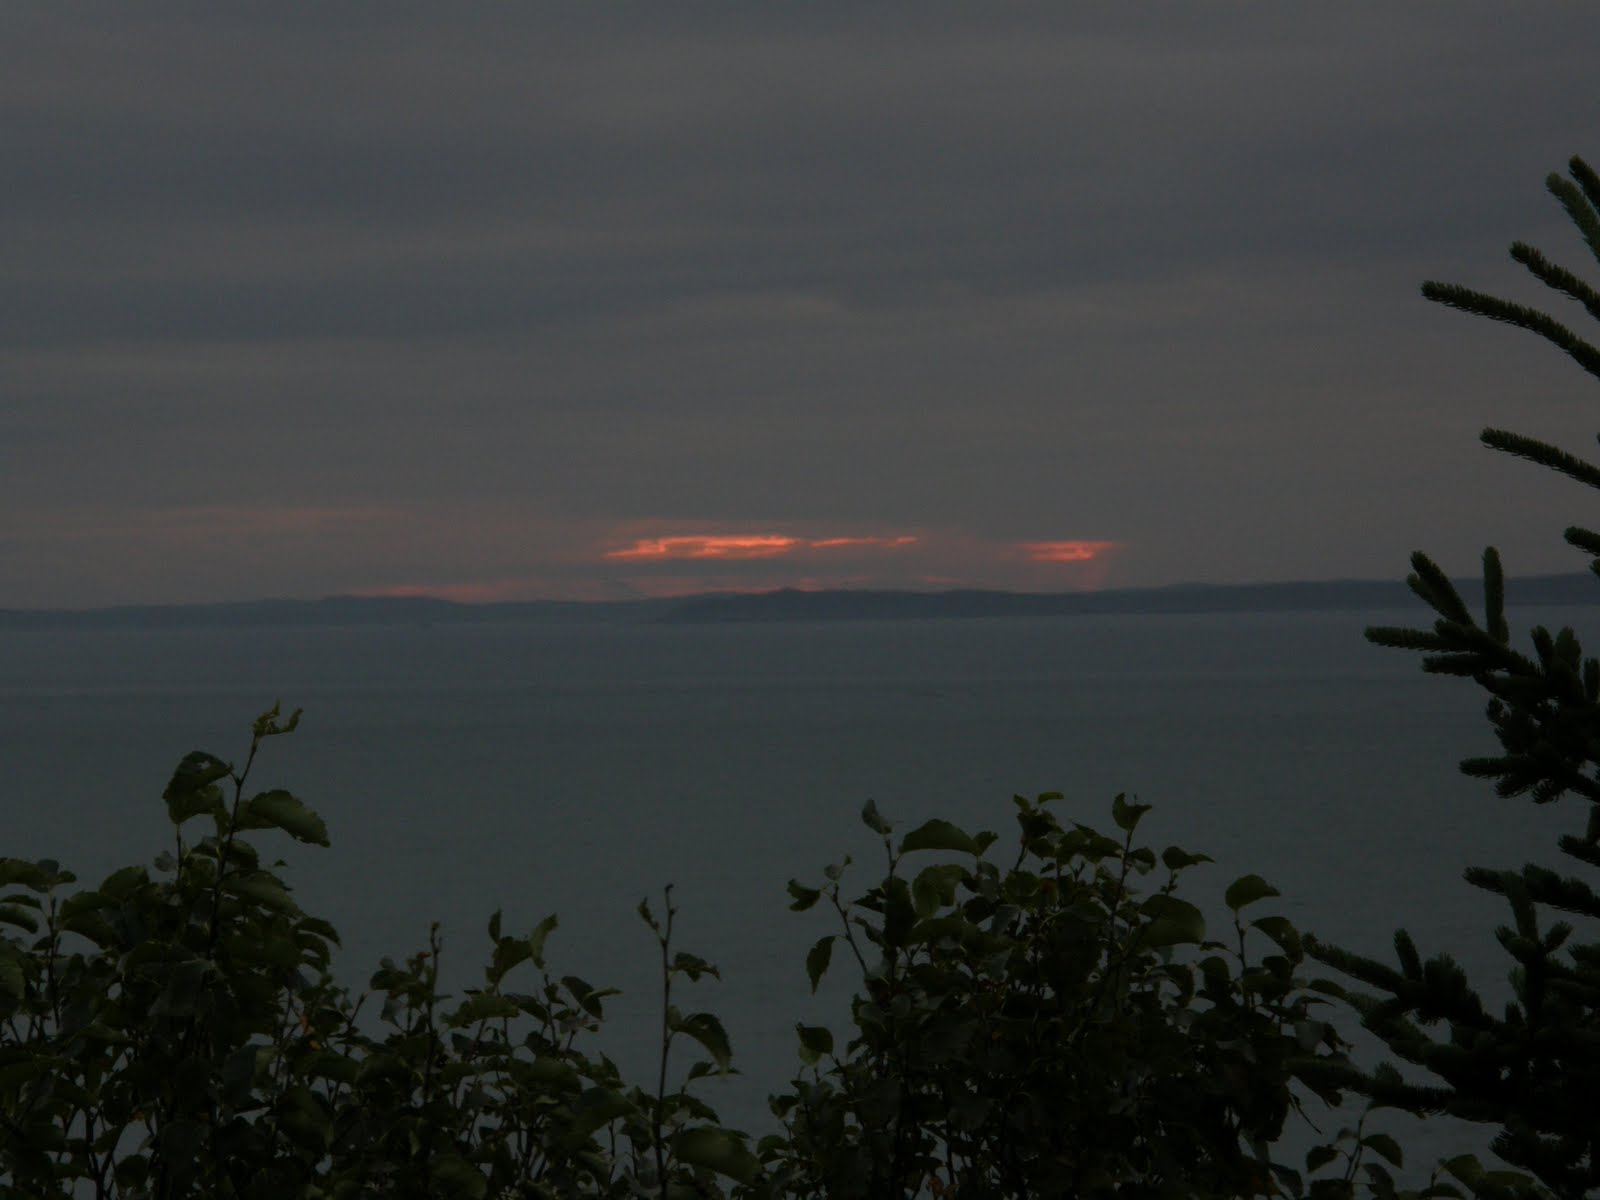 photography 365 2011 more from grand manan this time involving photographs shot under low light or other difficult conditions this first shot was taken from the base of the